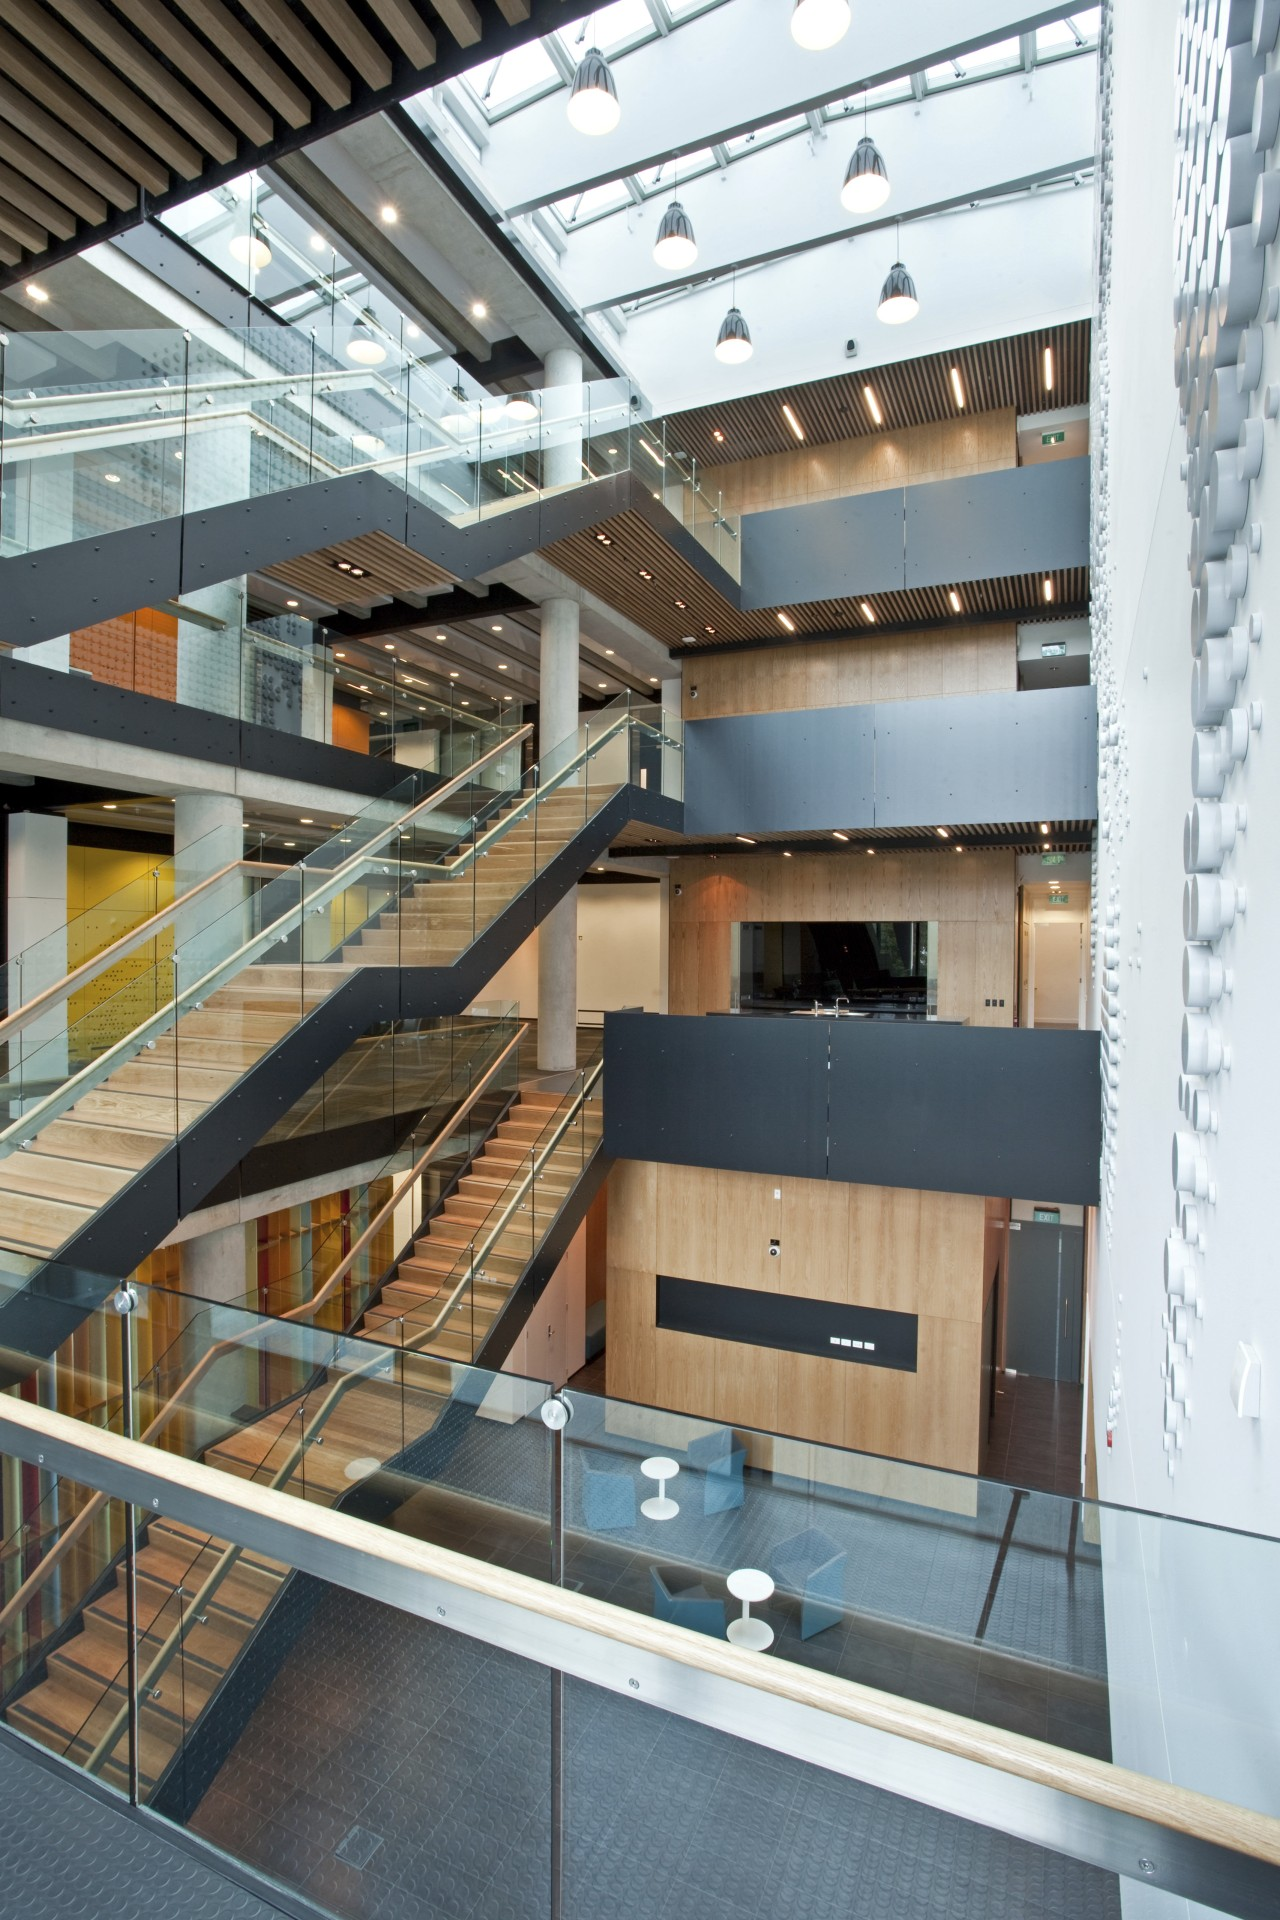 View of different levels of University building. architecture, building, daylighting, stairs, white